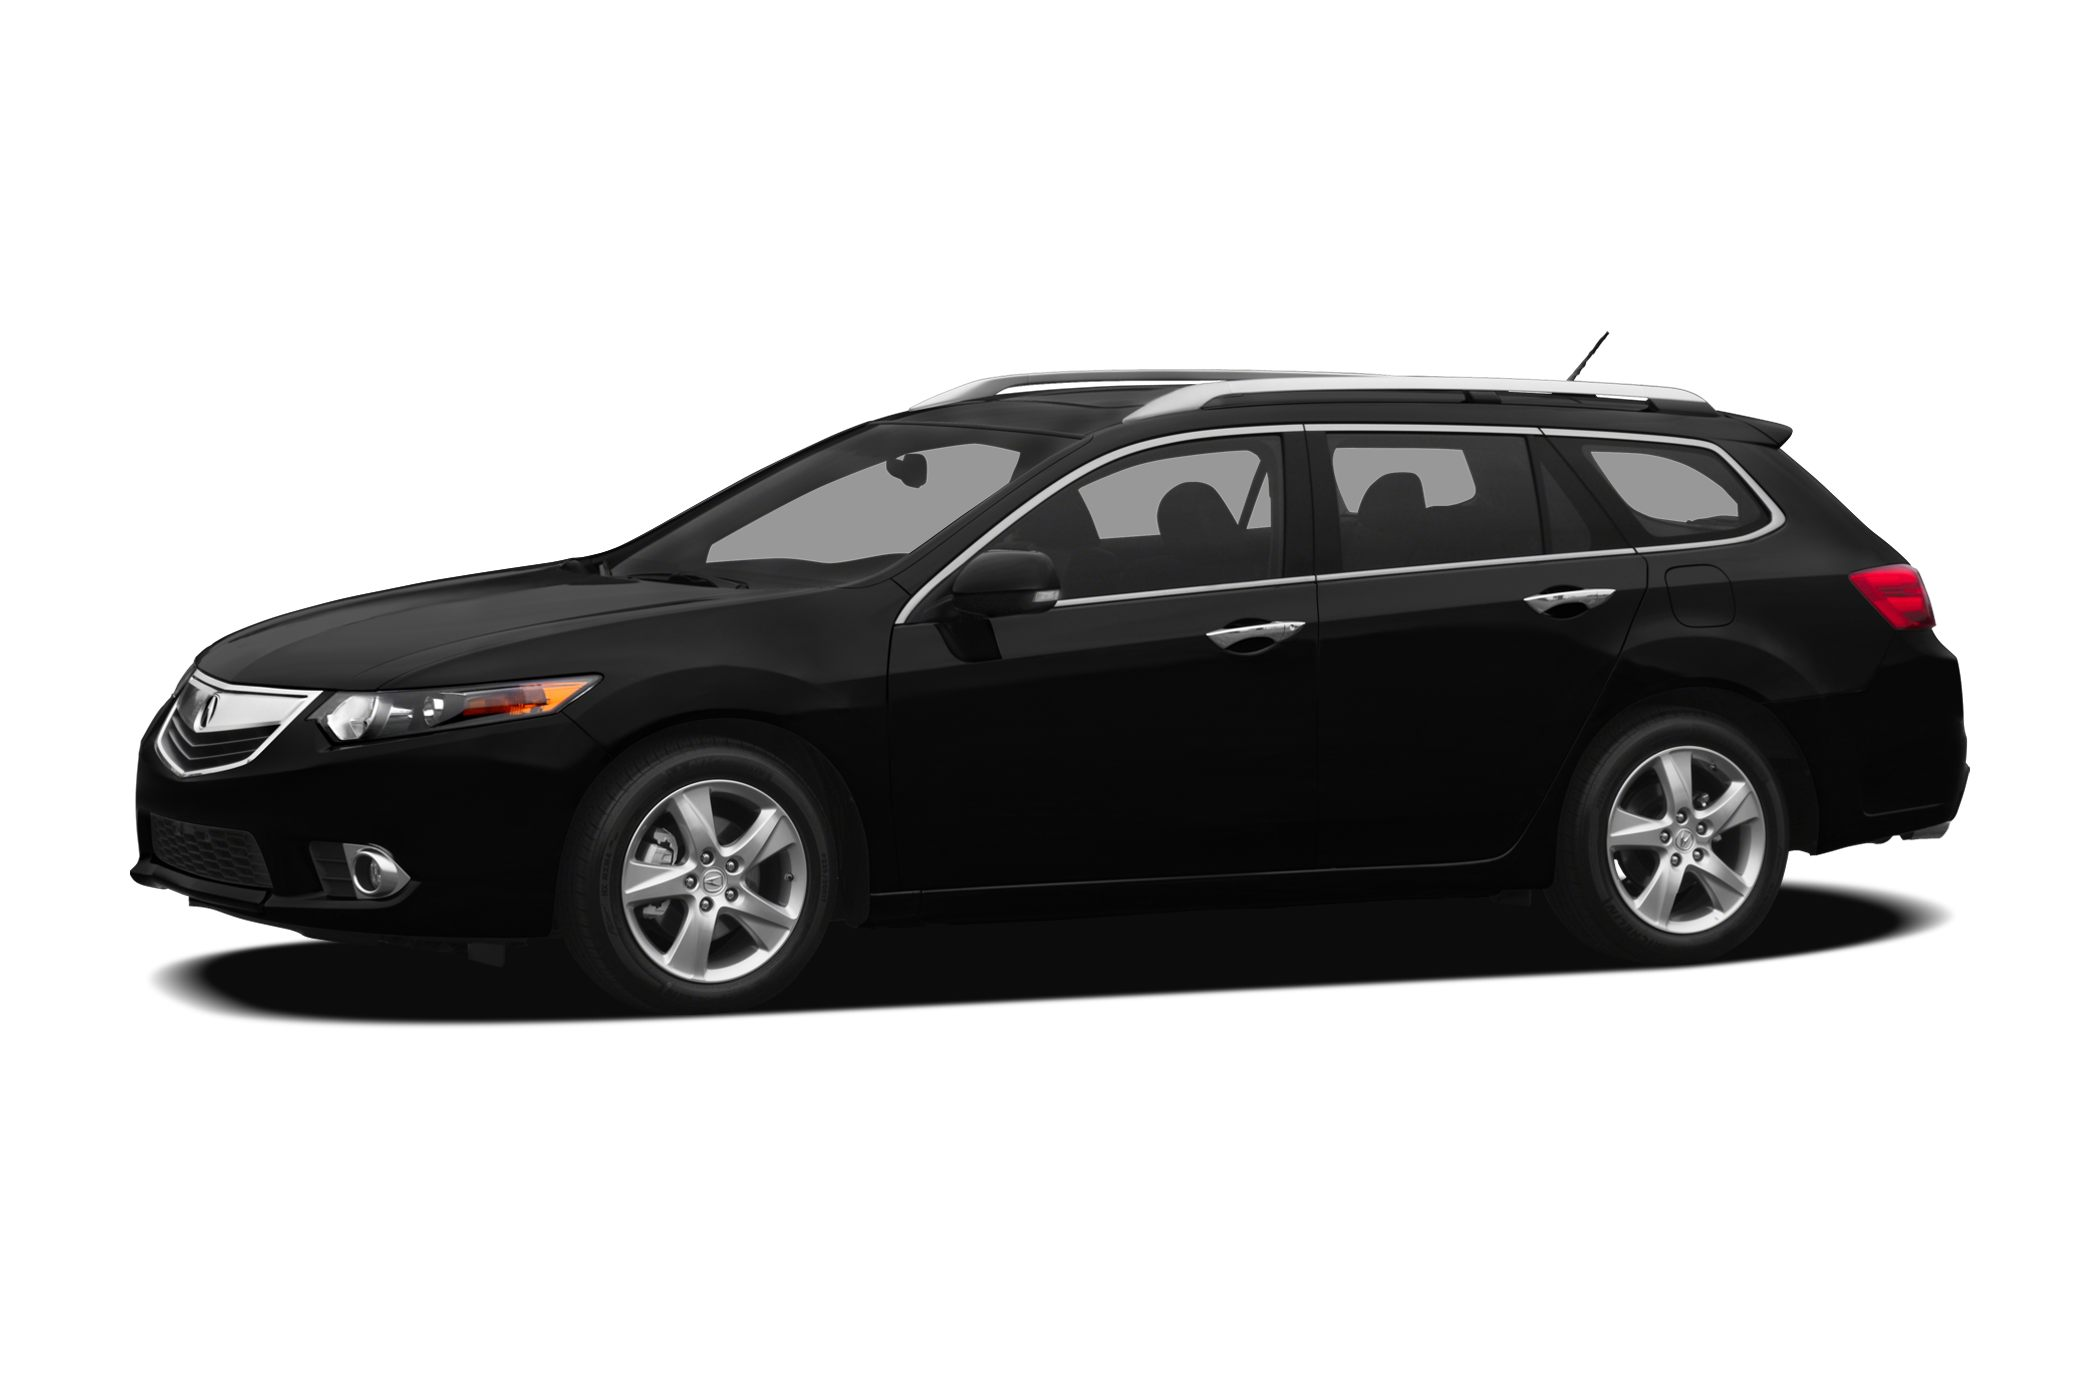 2012 Acura TSX 2 4 4dr Sport Wagon Specs and Prices